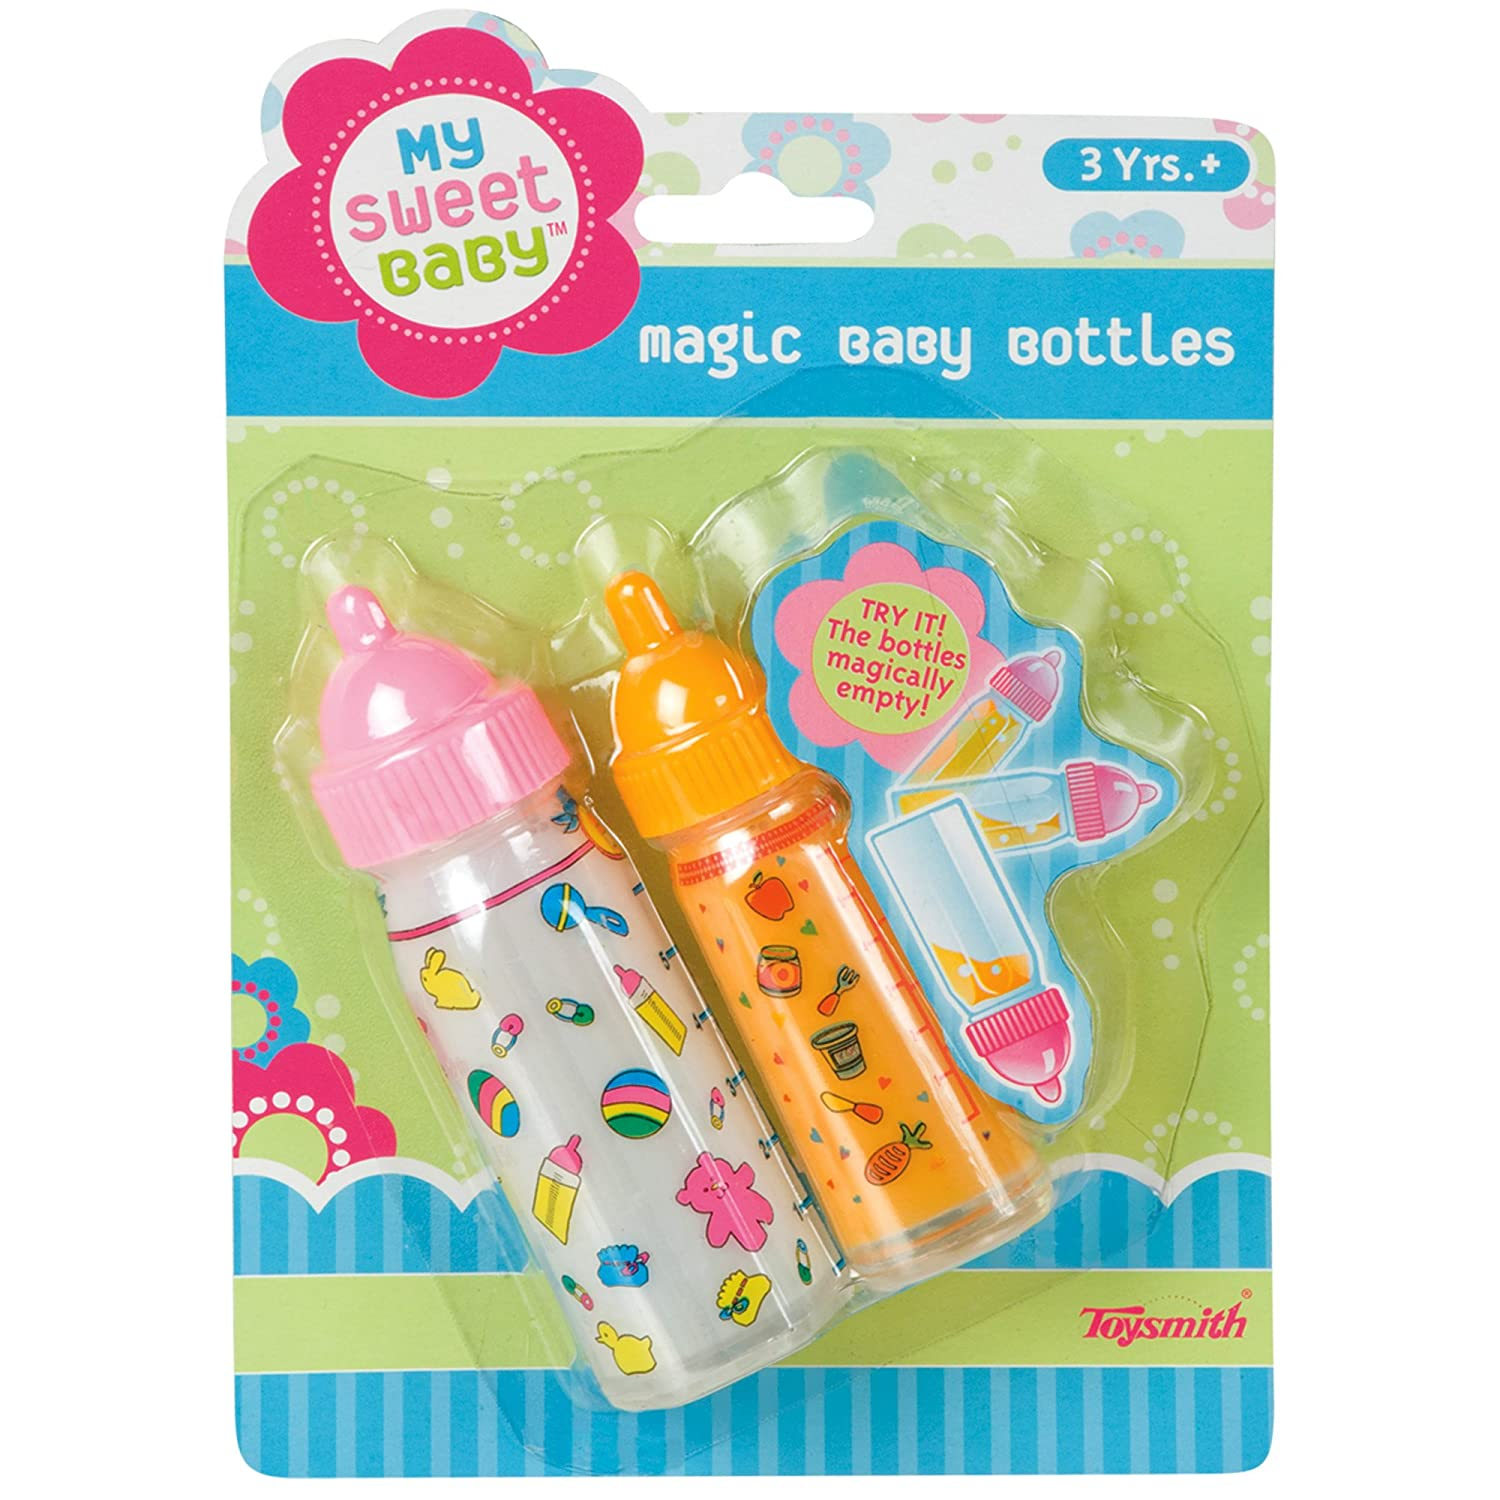 Amazon.com: Toysmith My Sweet Baby Magic Baby Bottles: Toys & Games